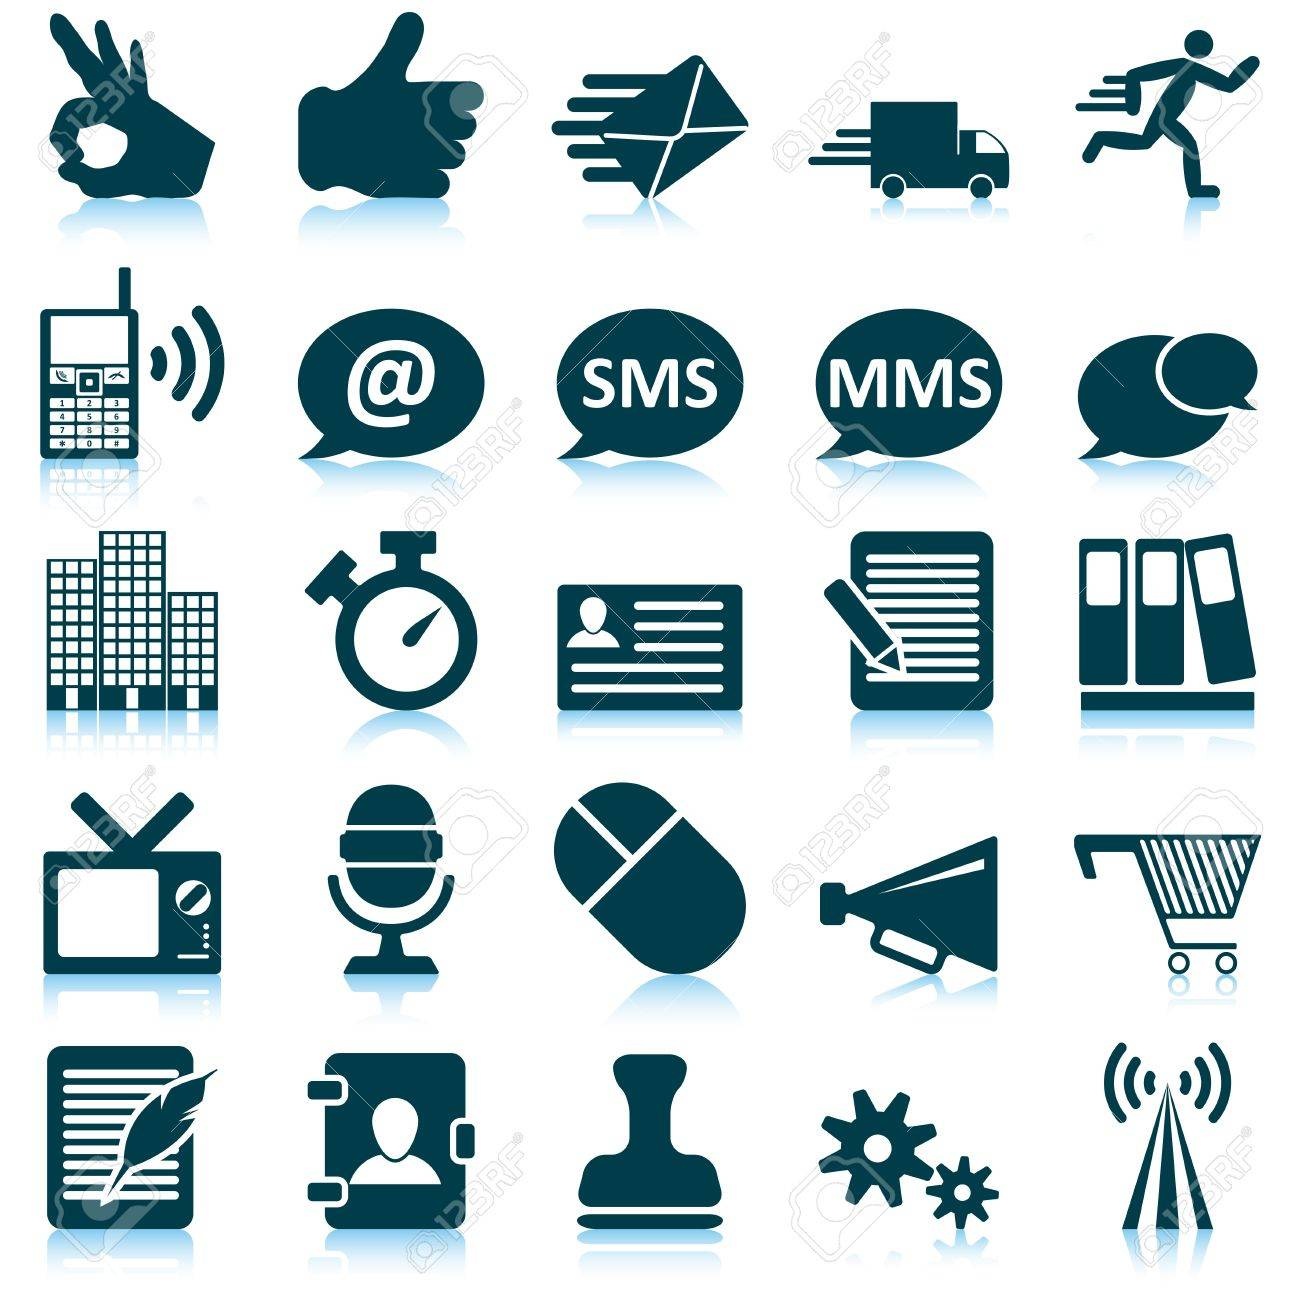 Office and communication icon set. Vector illustration. Stock Vector - 15386636